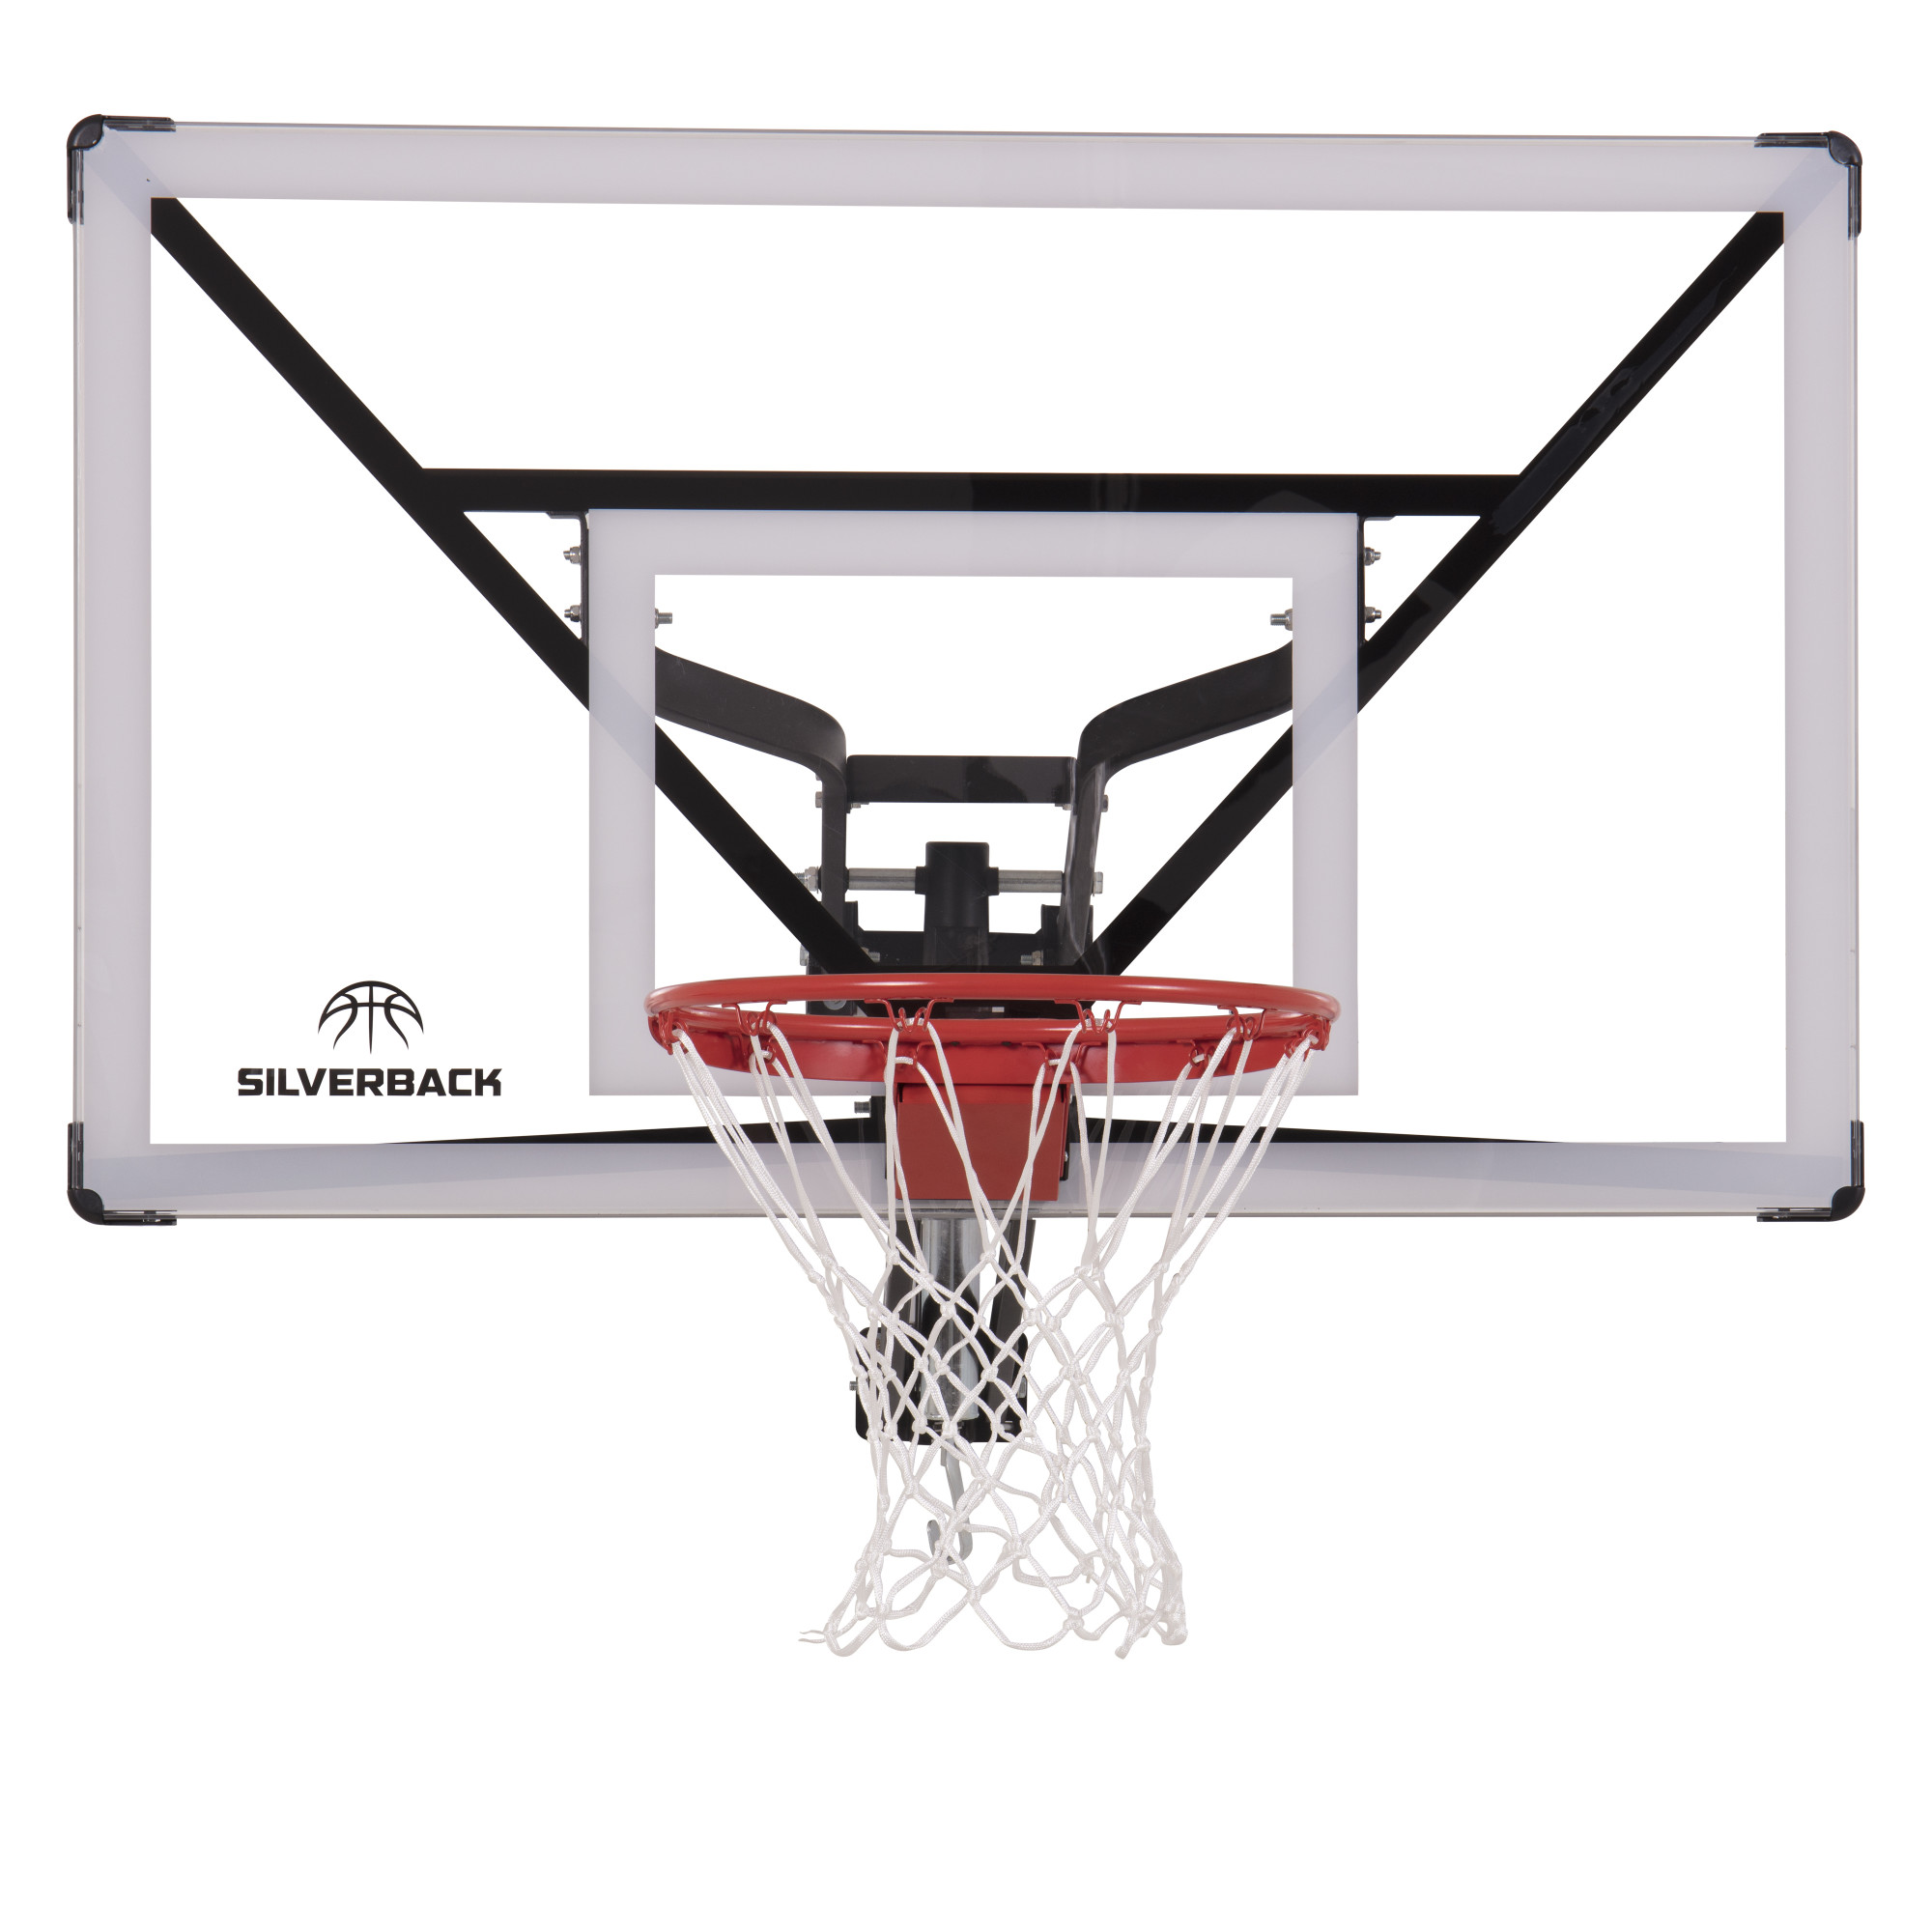 Fajiabao Basketball Hoop Stand with Back Board and Basketball Kids Indoor Outdoor Garden Sport Games Adjustable Basketball Stand Playset for 6 7 8 Year Old Girls Boys Kids